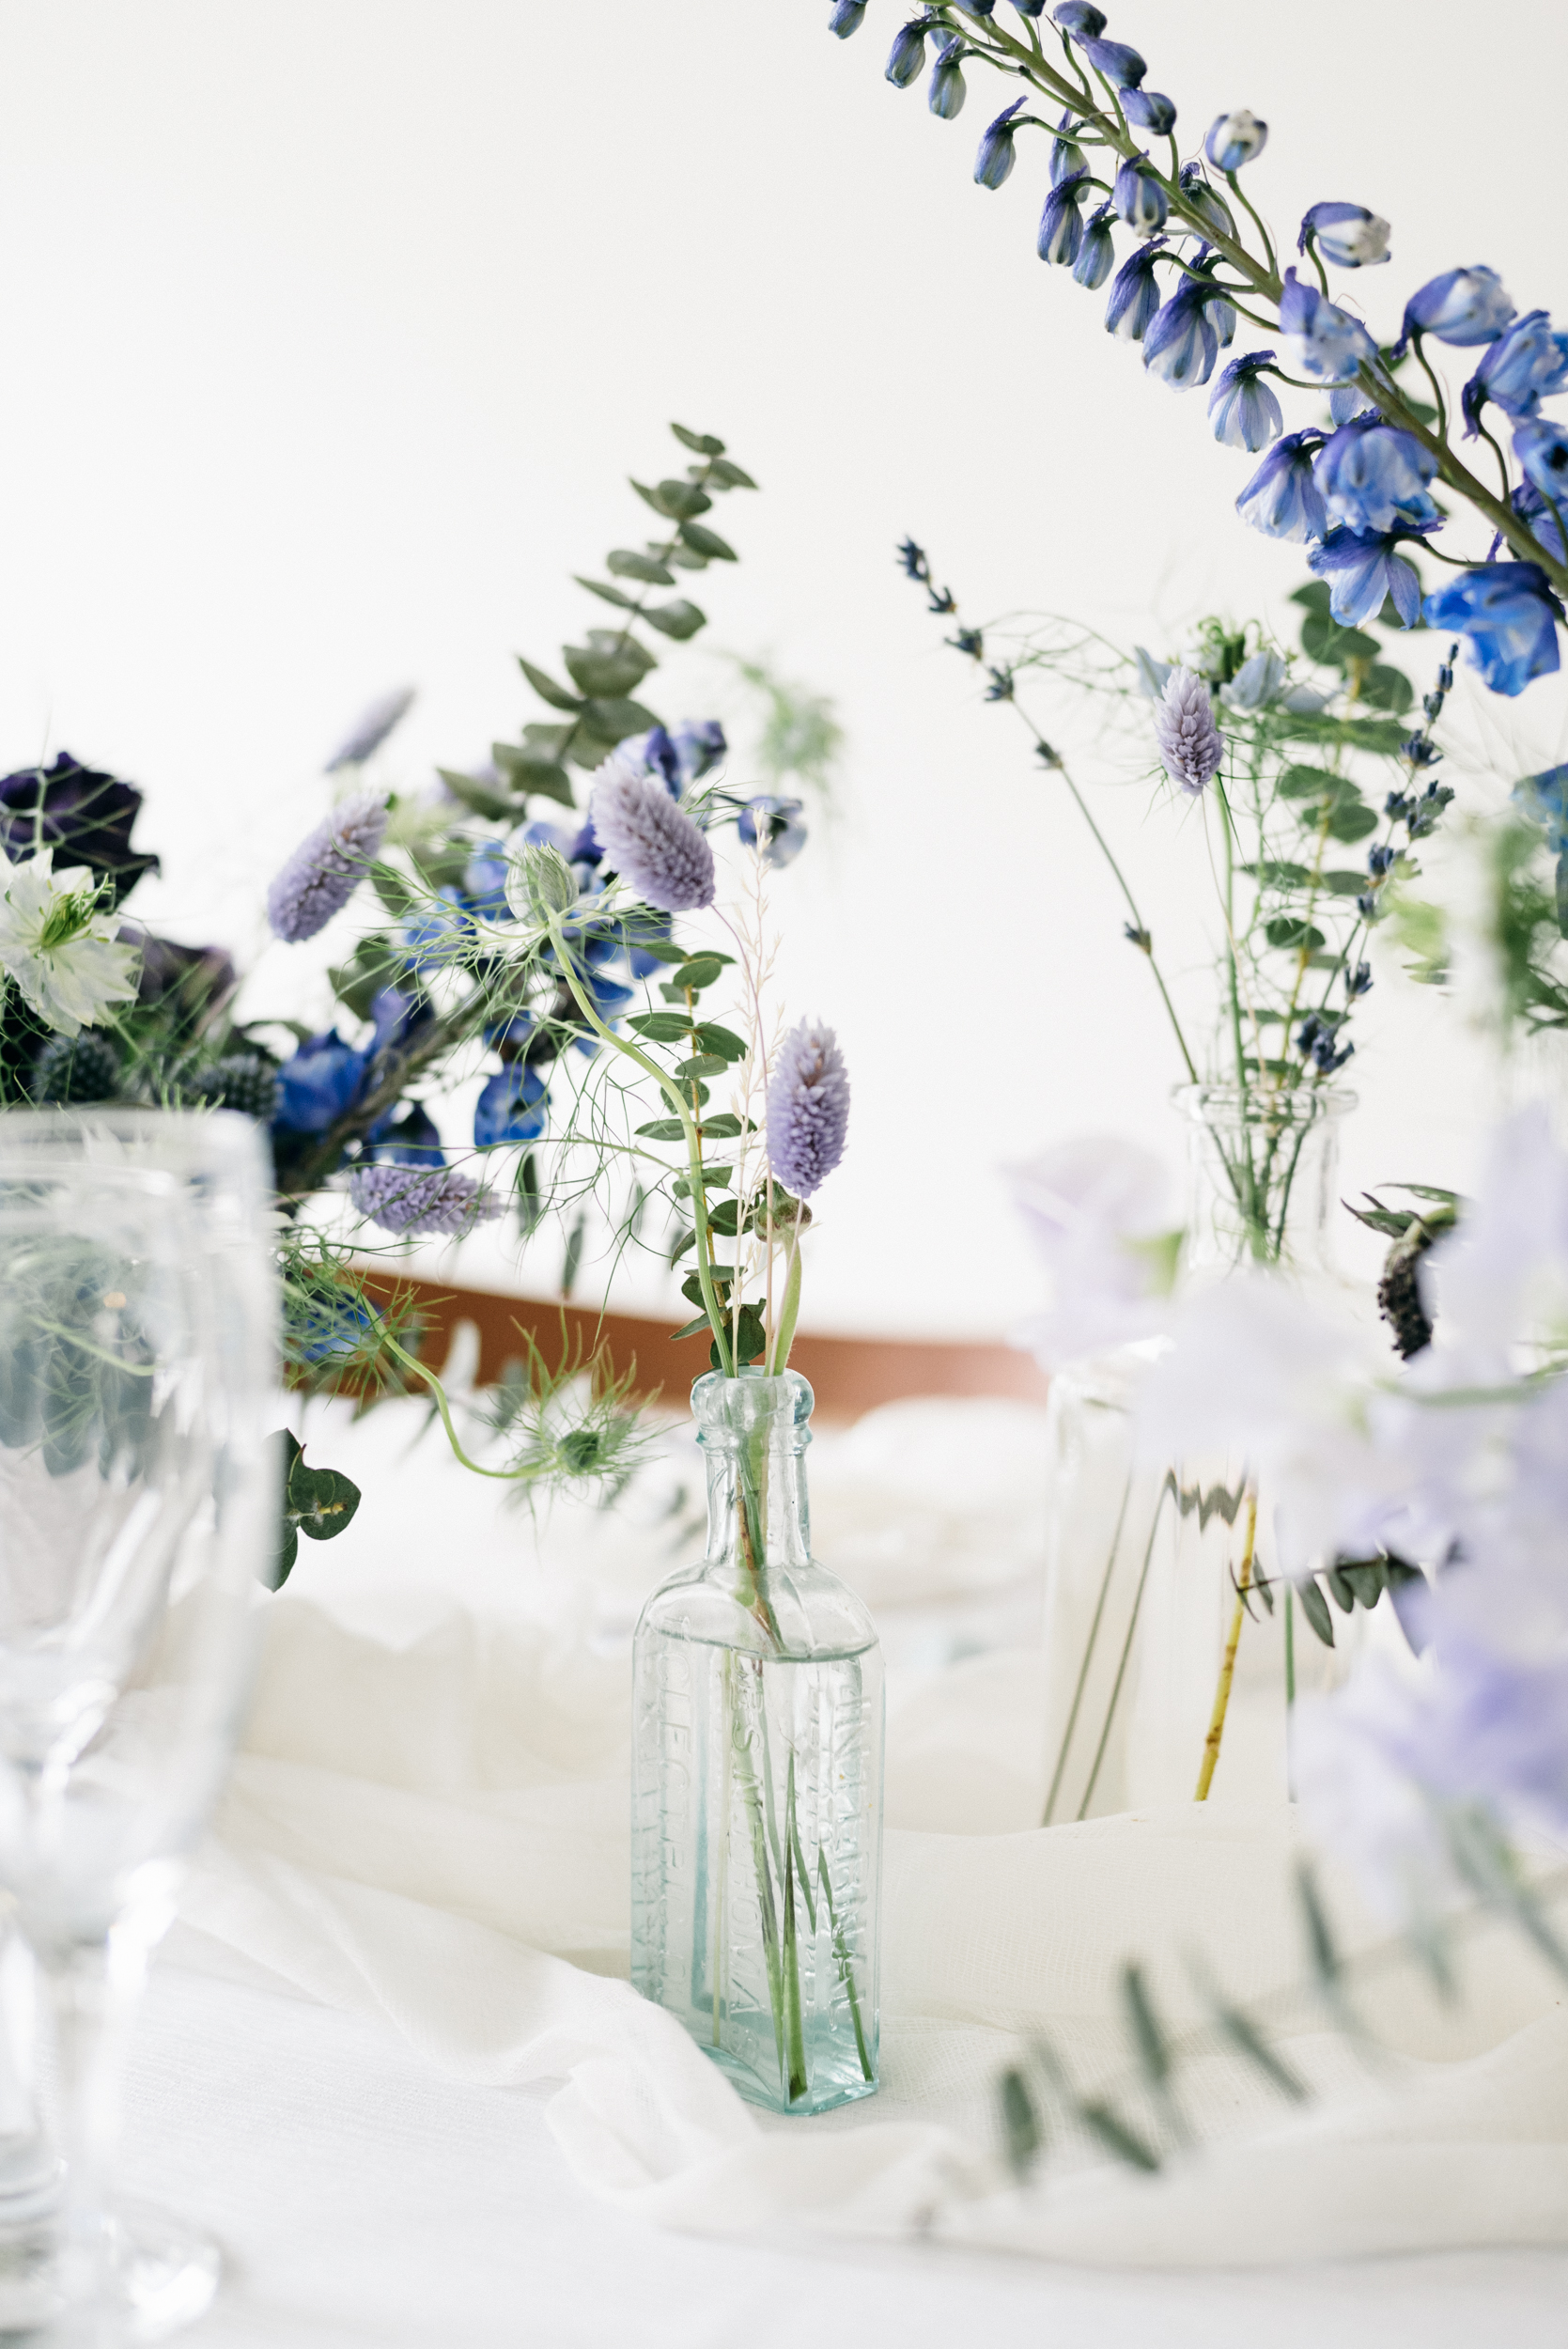 styled-tablescapes-62.jpg